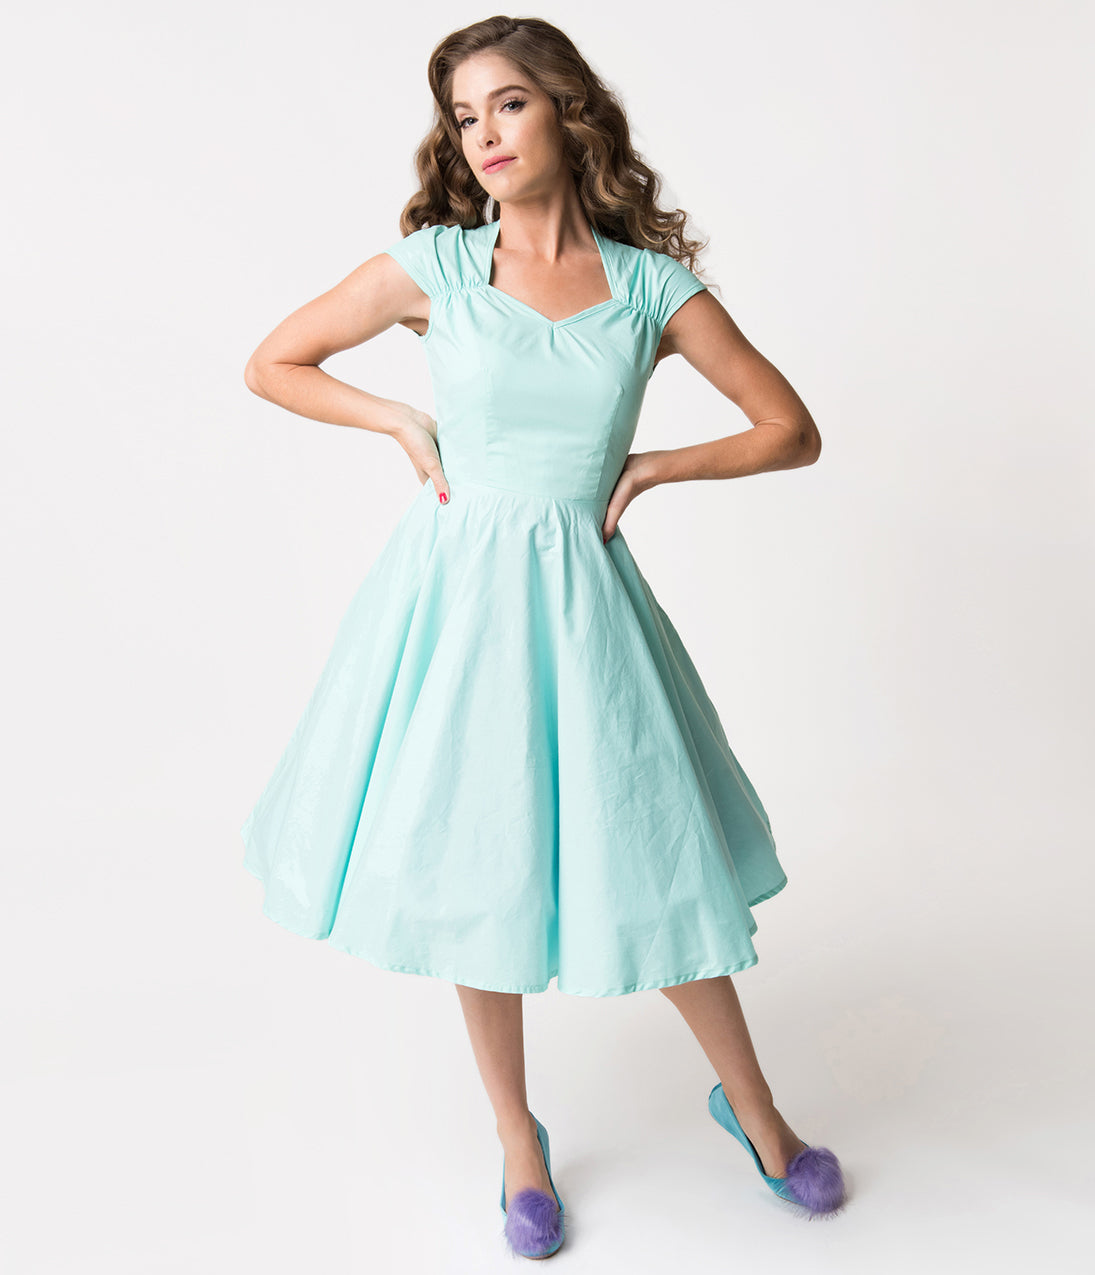 Pin Up Dresses | Pinup Clothing & Fashion 1950S Style Mint Blue Cotton Bowy Swing Dress $46.00 AT vintagedancer.com